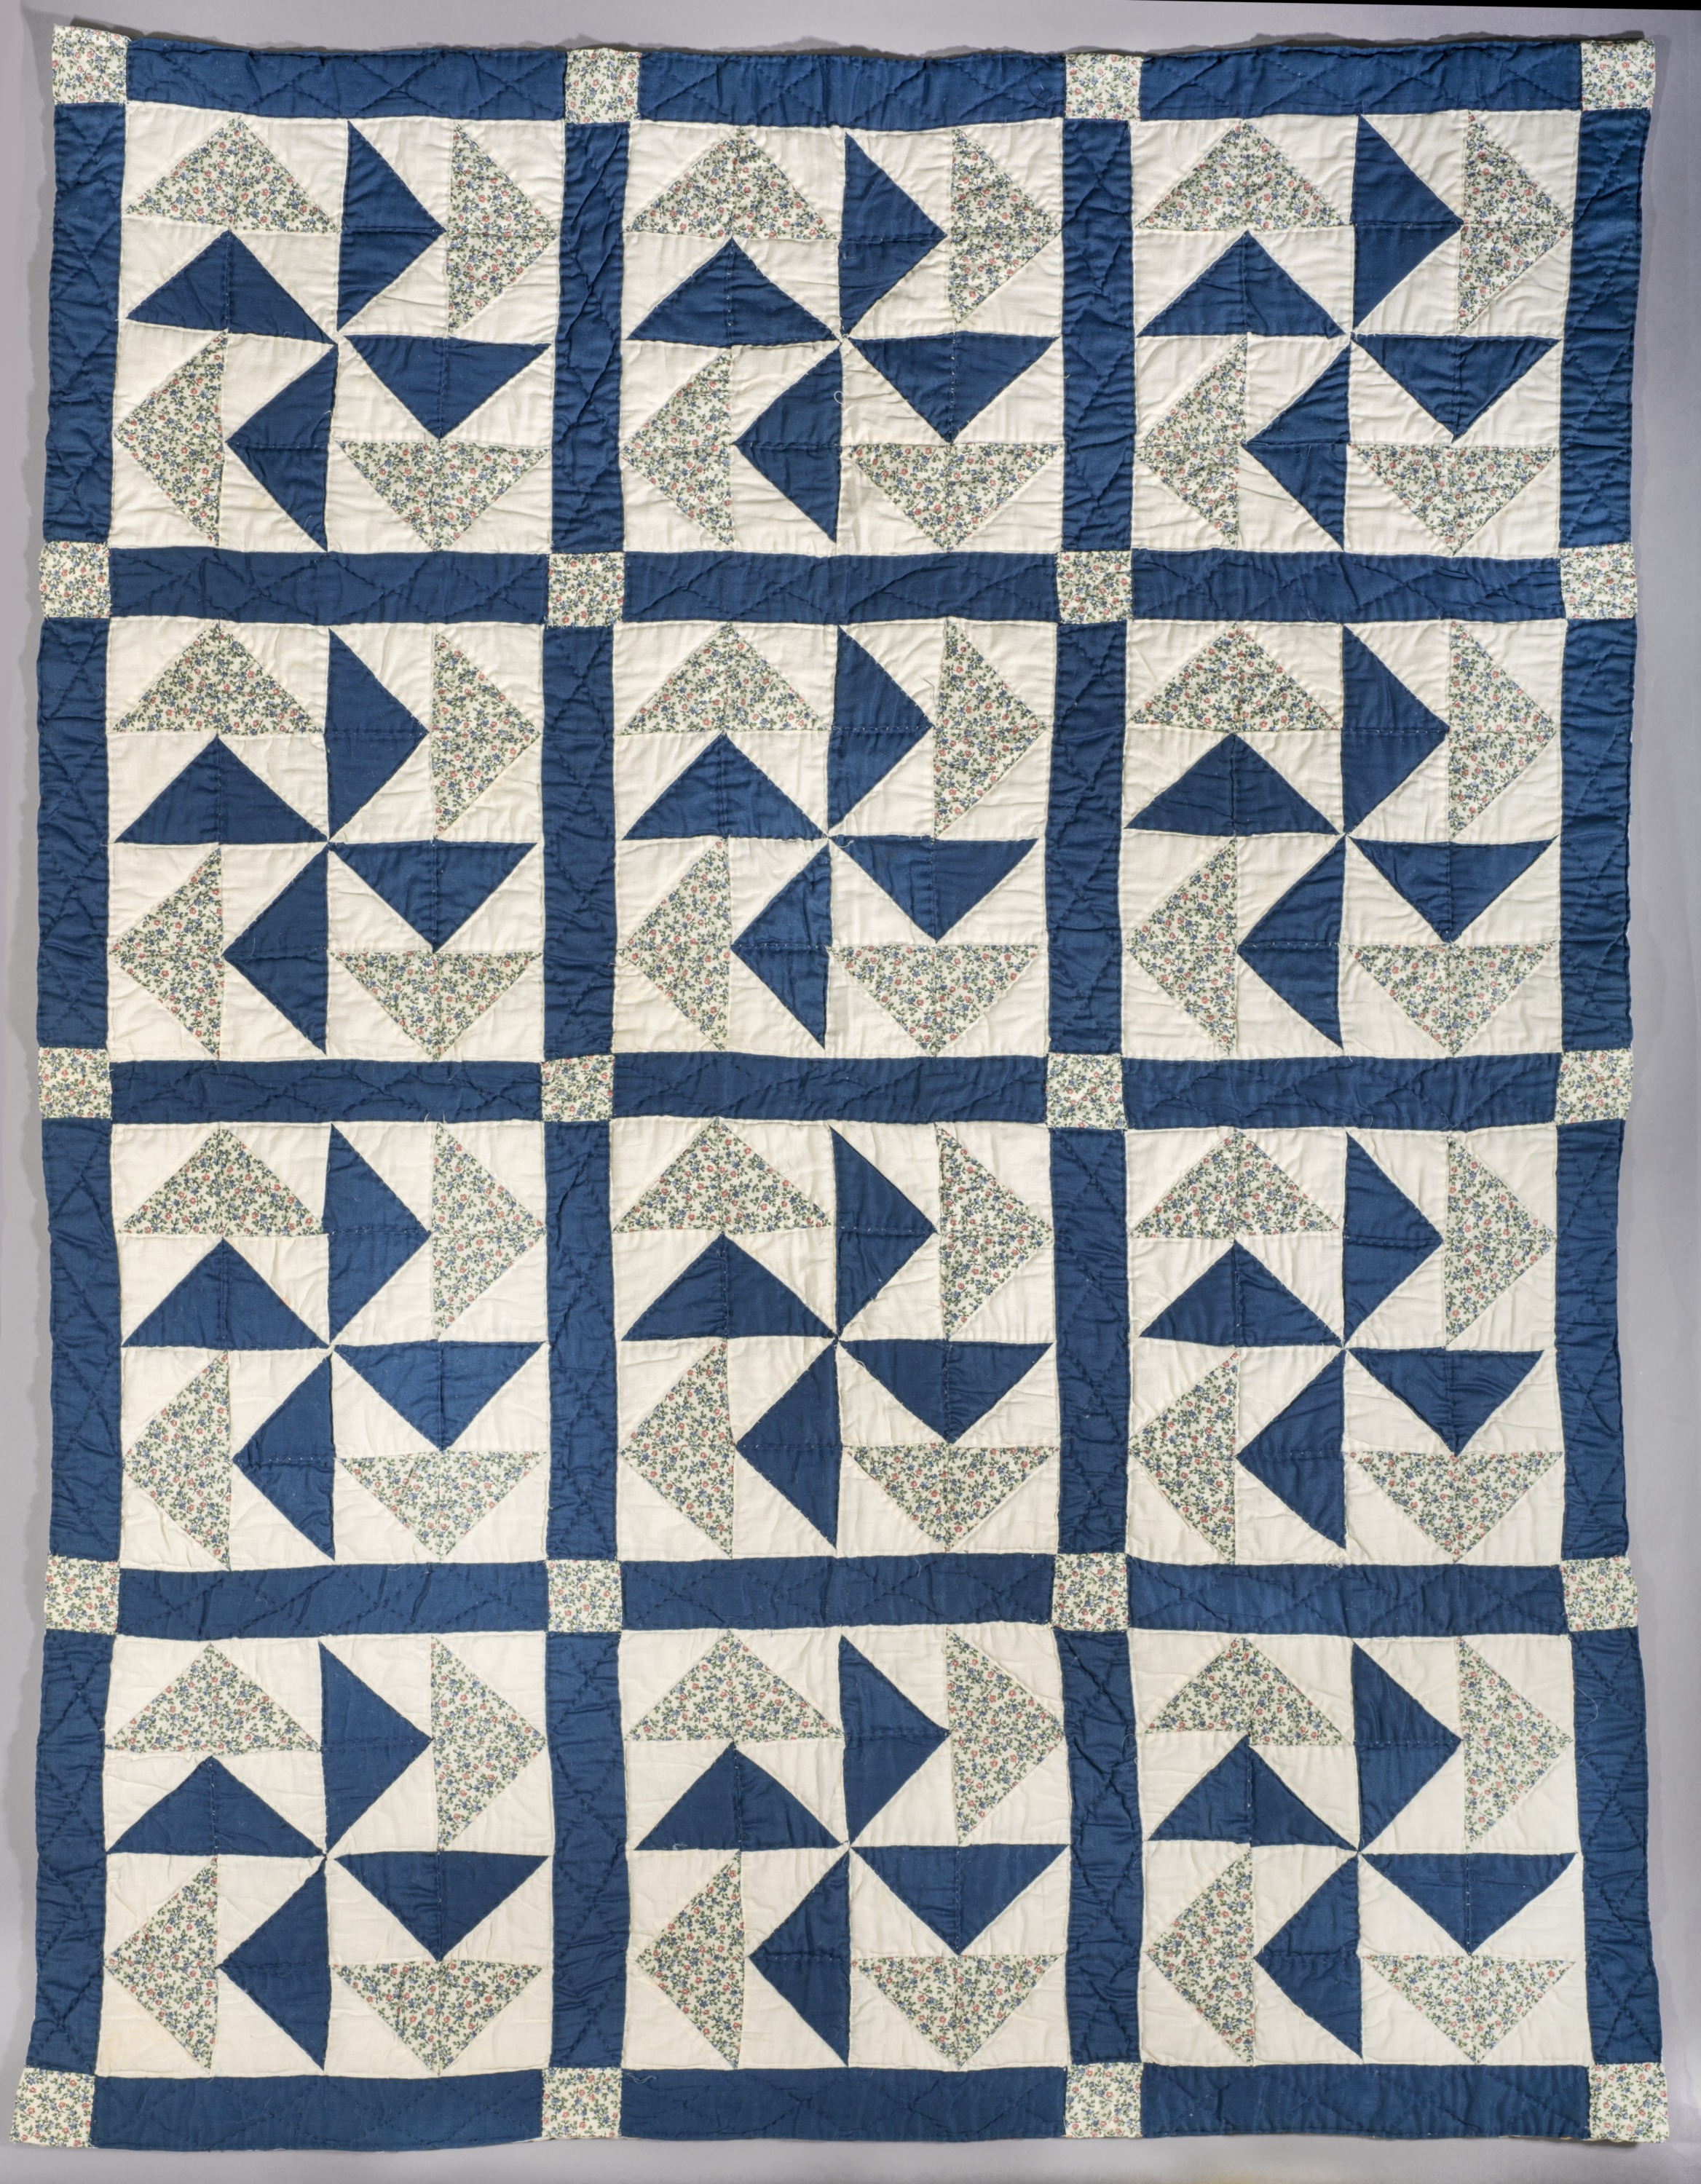 Picture of Blue Flower Quilt, Smithsonian Anacostia Community Museum Artist: Ira Blount